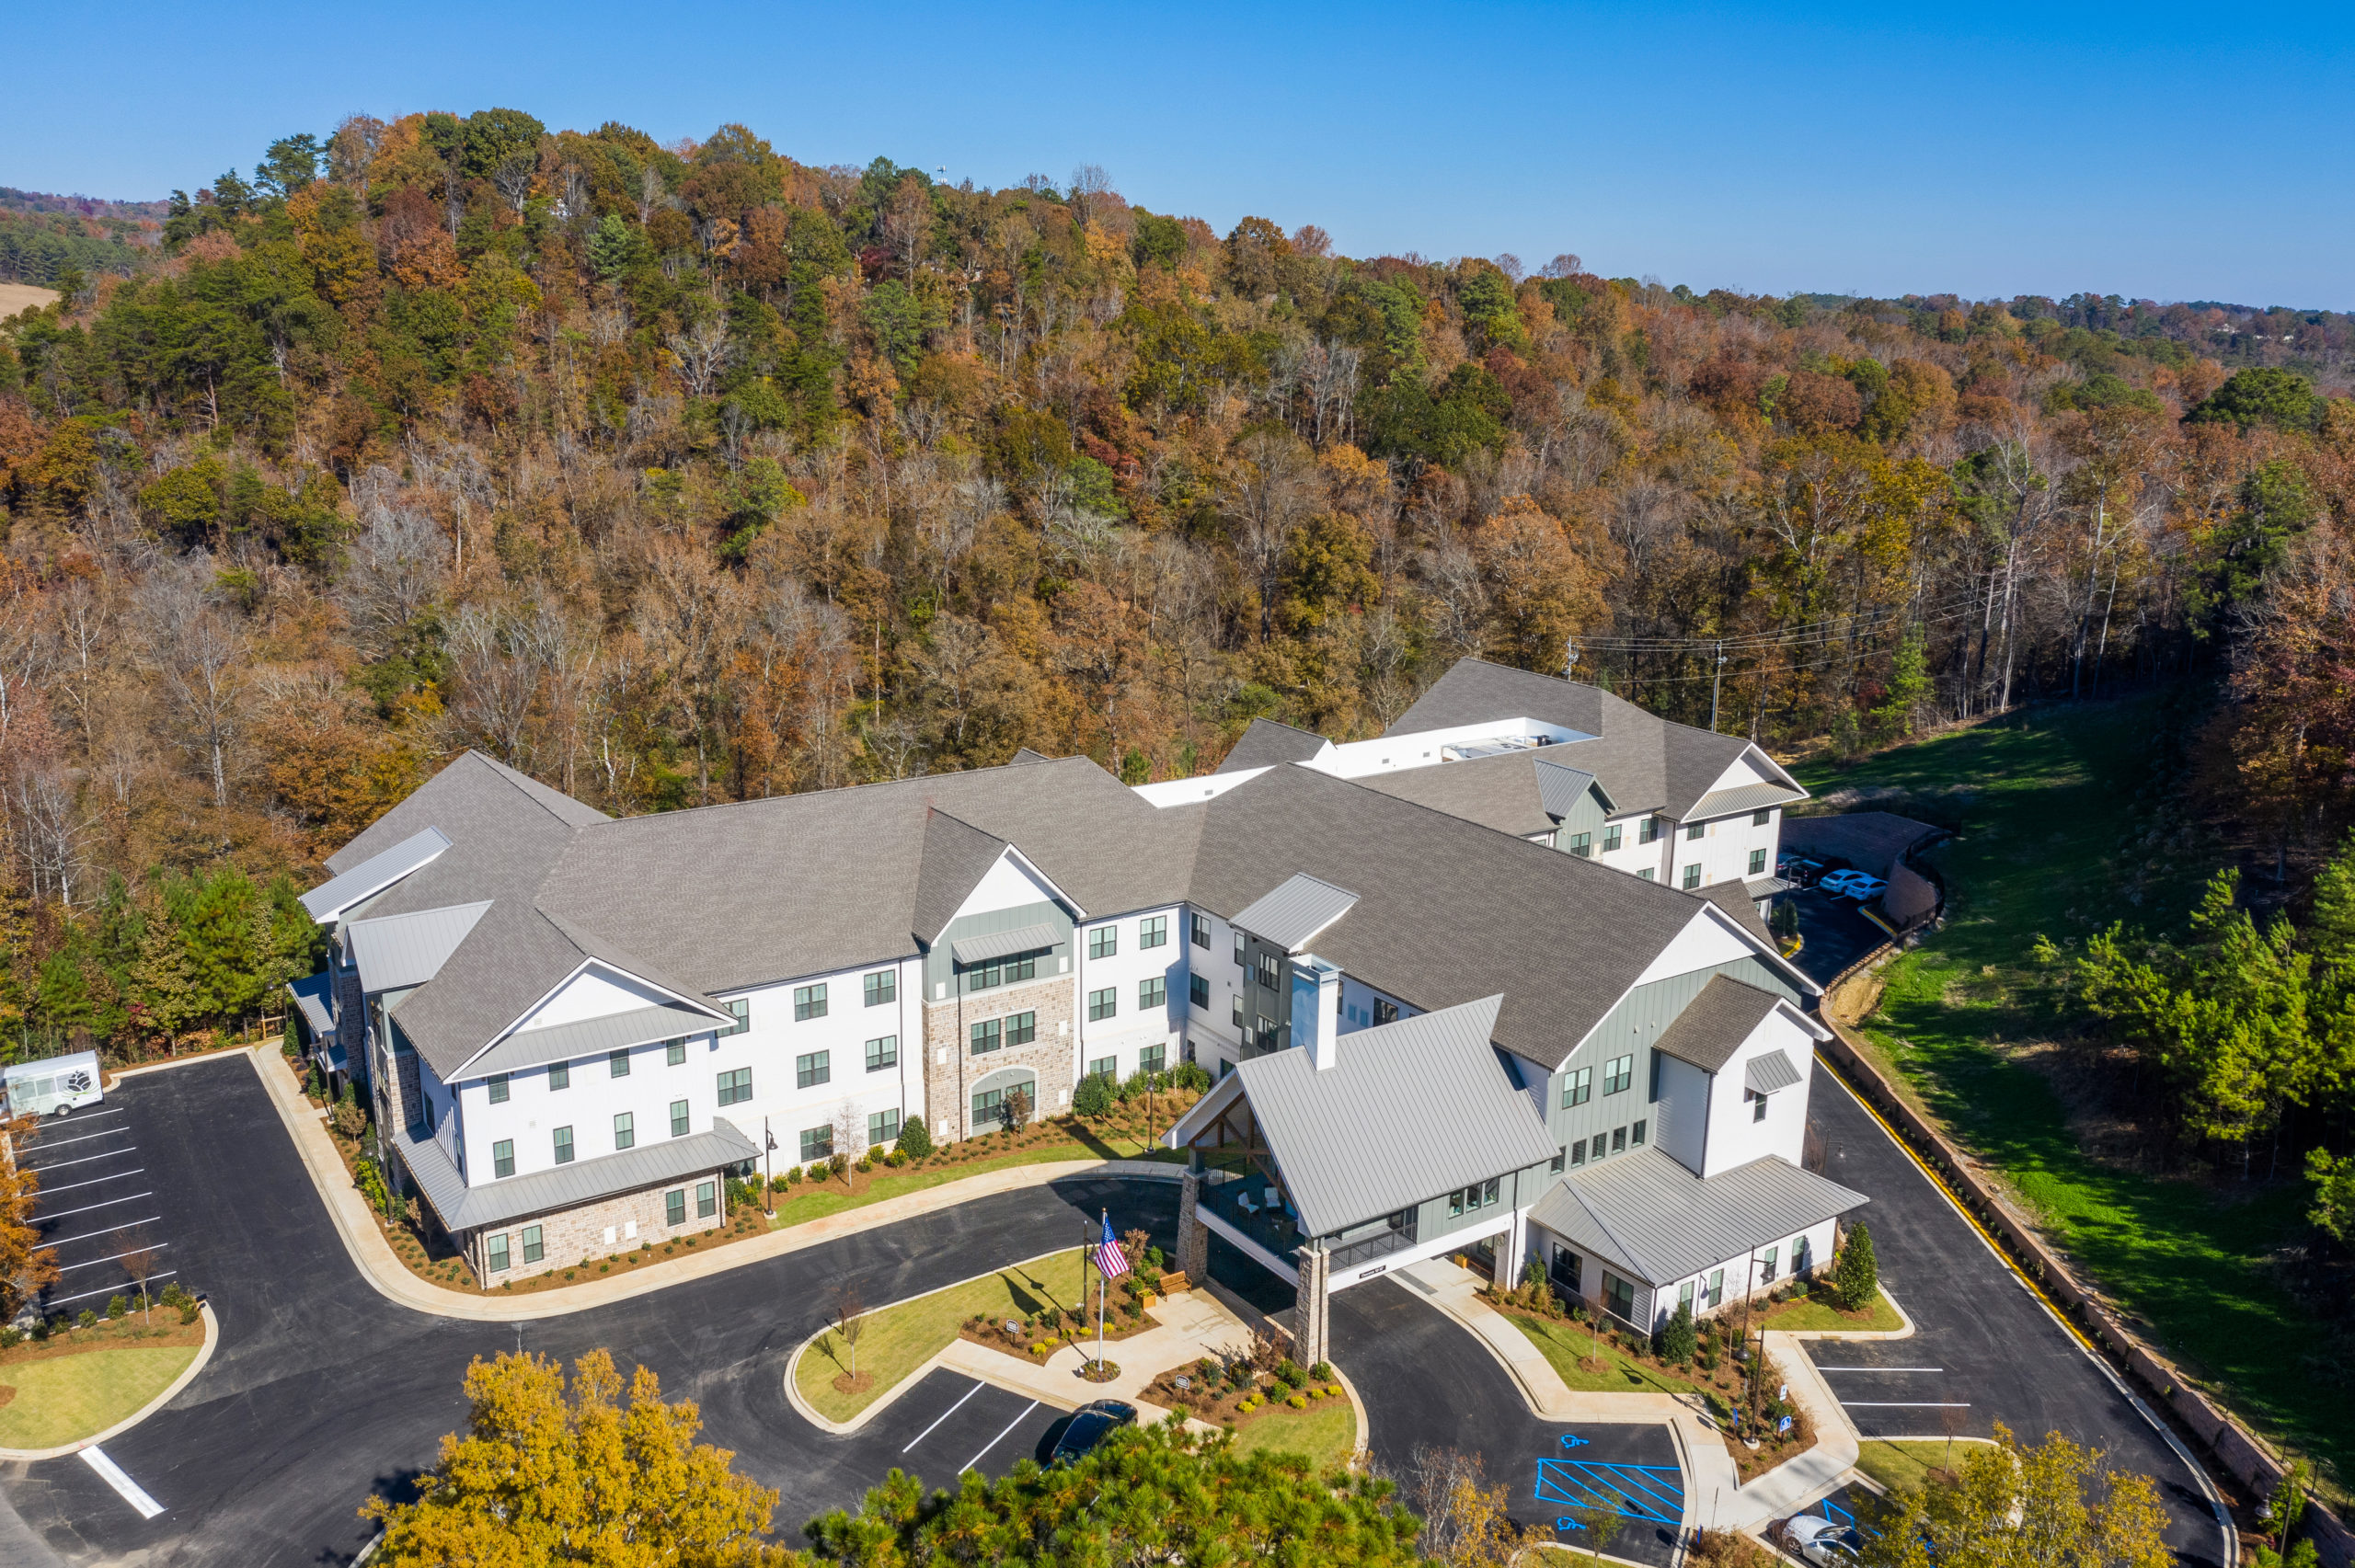 Aerial view of Longleaf community looking at front entrance with fall trees surrounding community